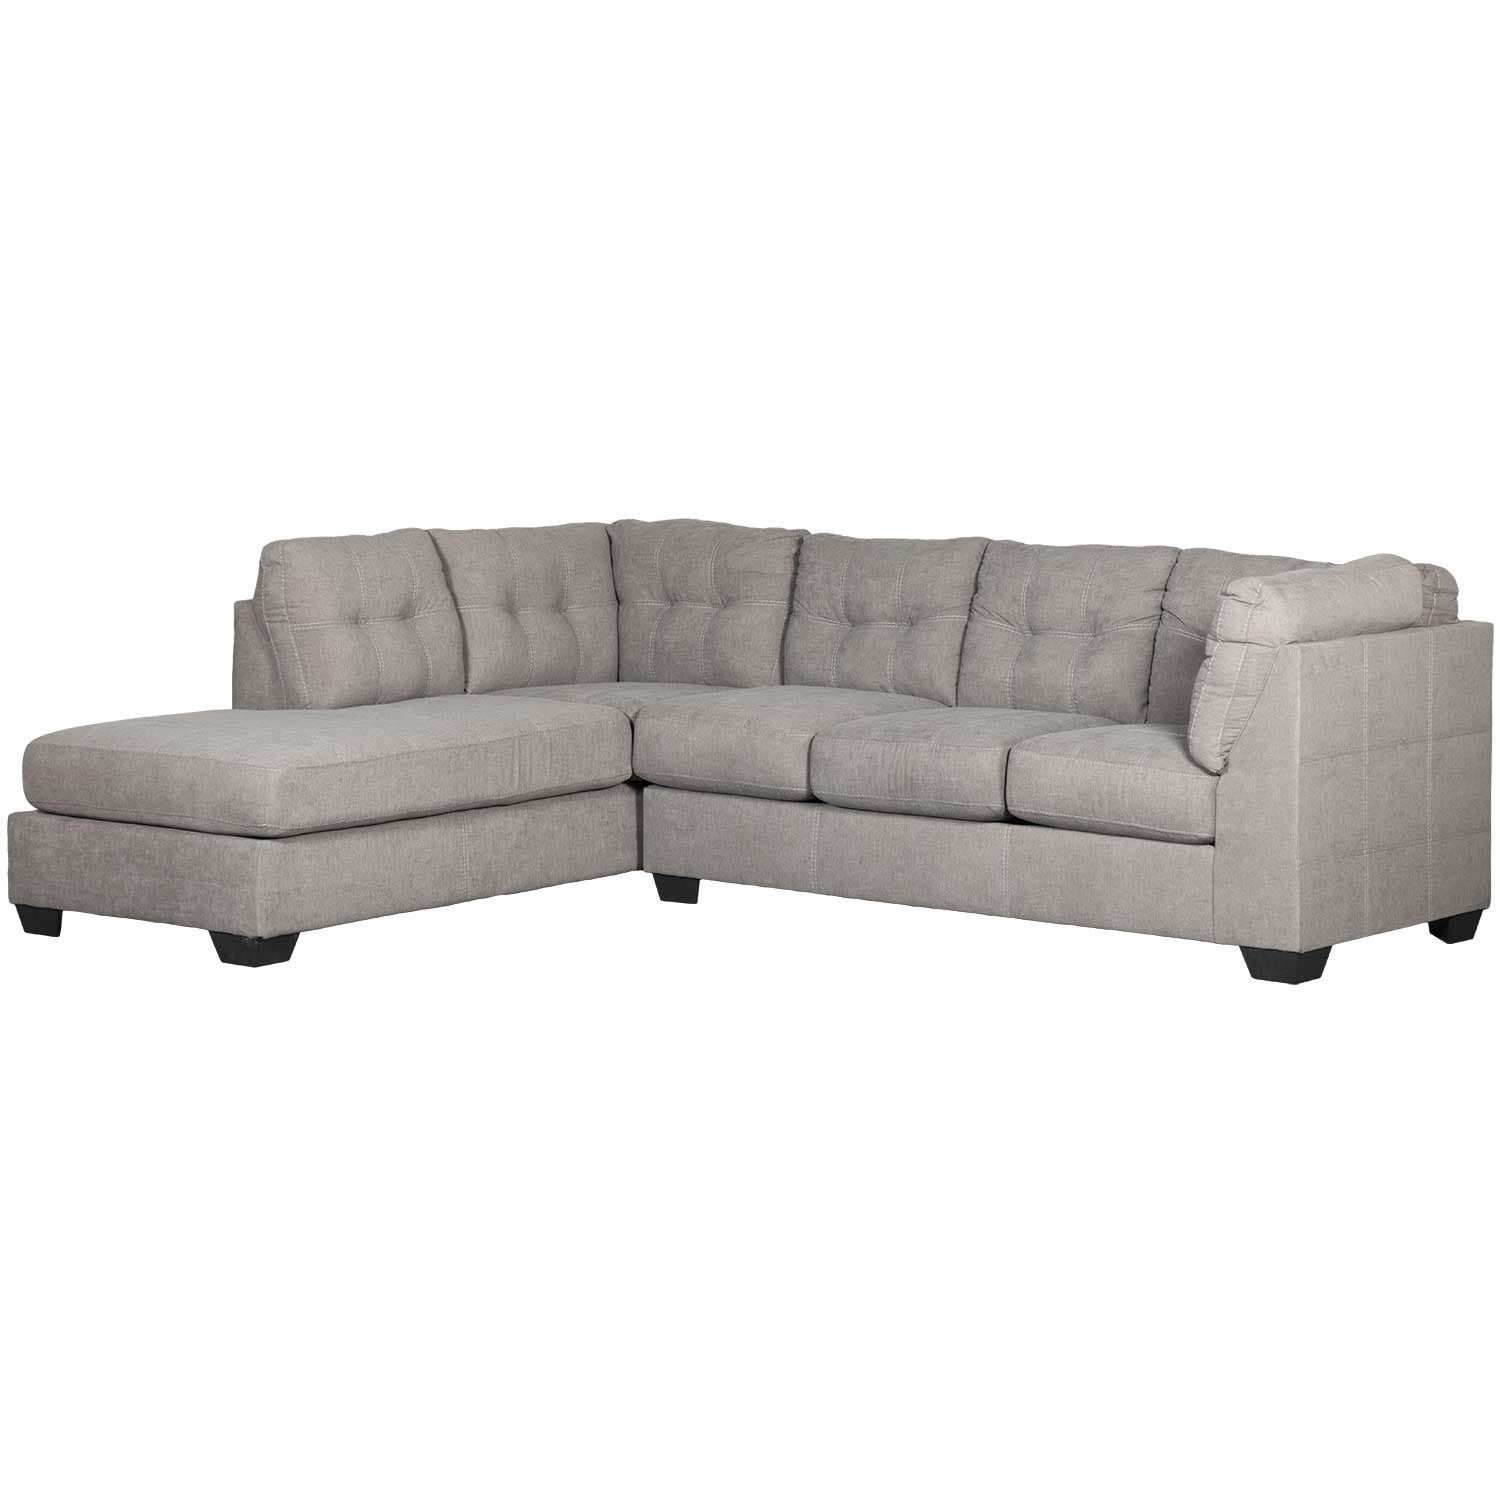 Maier Charcoal 2 Piece Sectional With Laf Chaise | 4520016/67 Throughout Arrowmask 2 Piece Sectionals With Laf Chaise (Image 12 of 25)